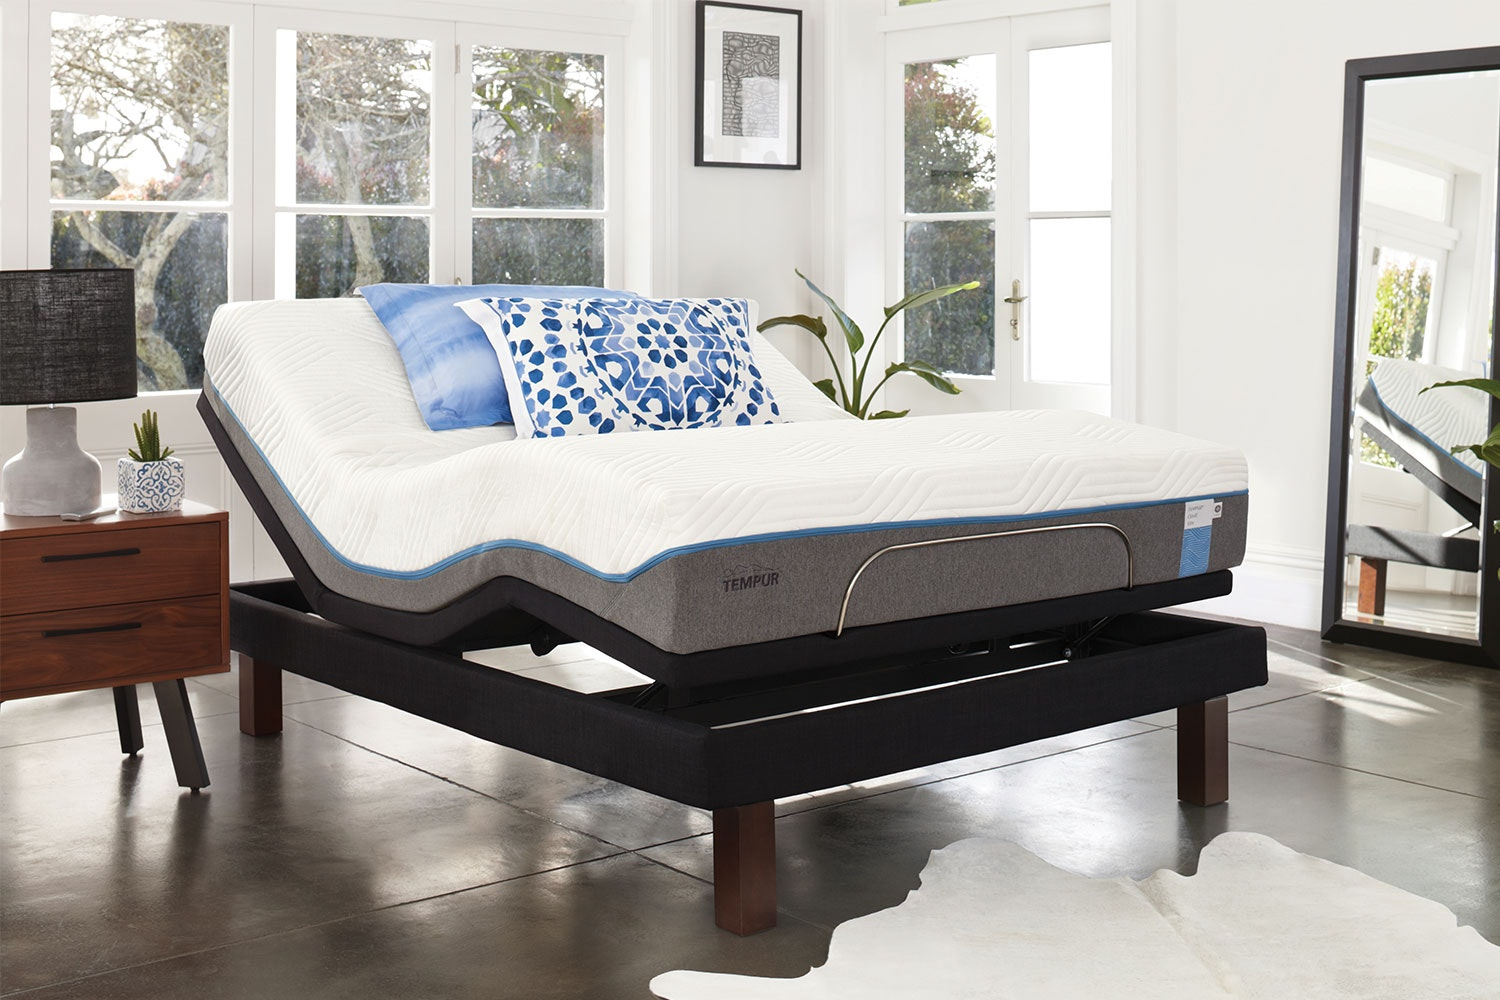 Nova Elite Californian King Mattress with Platinum Adjustable Base by Tempur